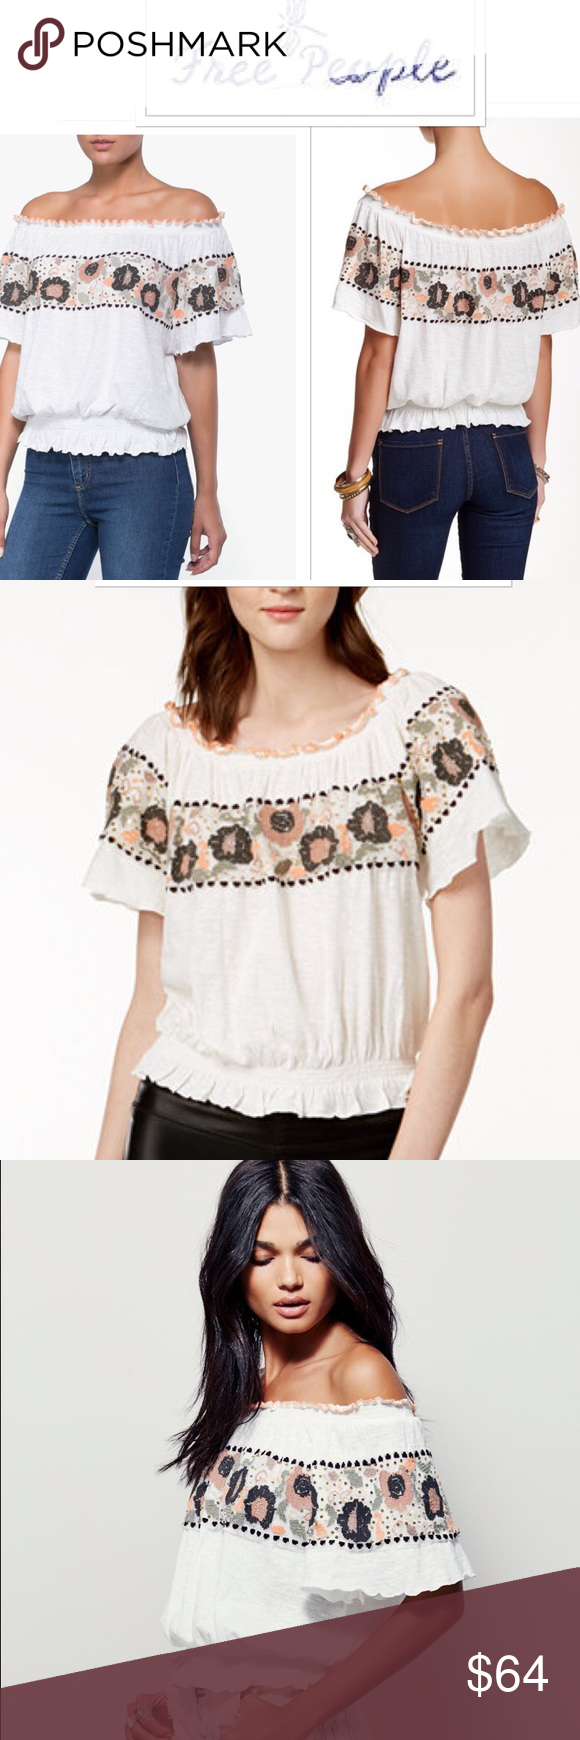 "New Free People ""Sienna"" Embroidered Top sz Lg New with tags, this ivory off-shoulder peasant top from Free People is feminine and chic, featuring floral embroidery and sequin detailing for a fun and vibrant appeal. short sleeves cinched elastic hem with ruffled trim, hits at hip pullover style size Large size 12, bust 39"" Free People Tops Blouses"